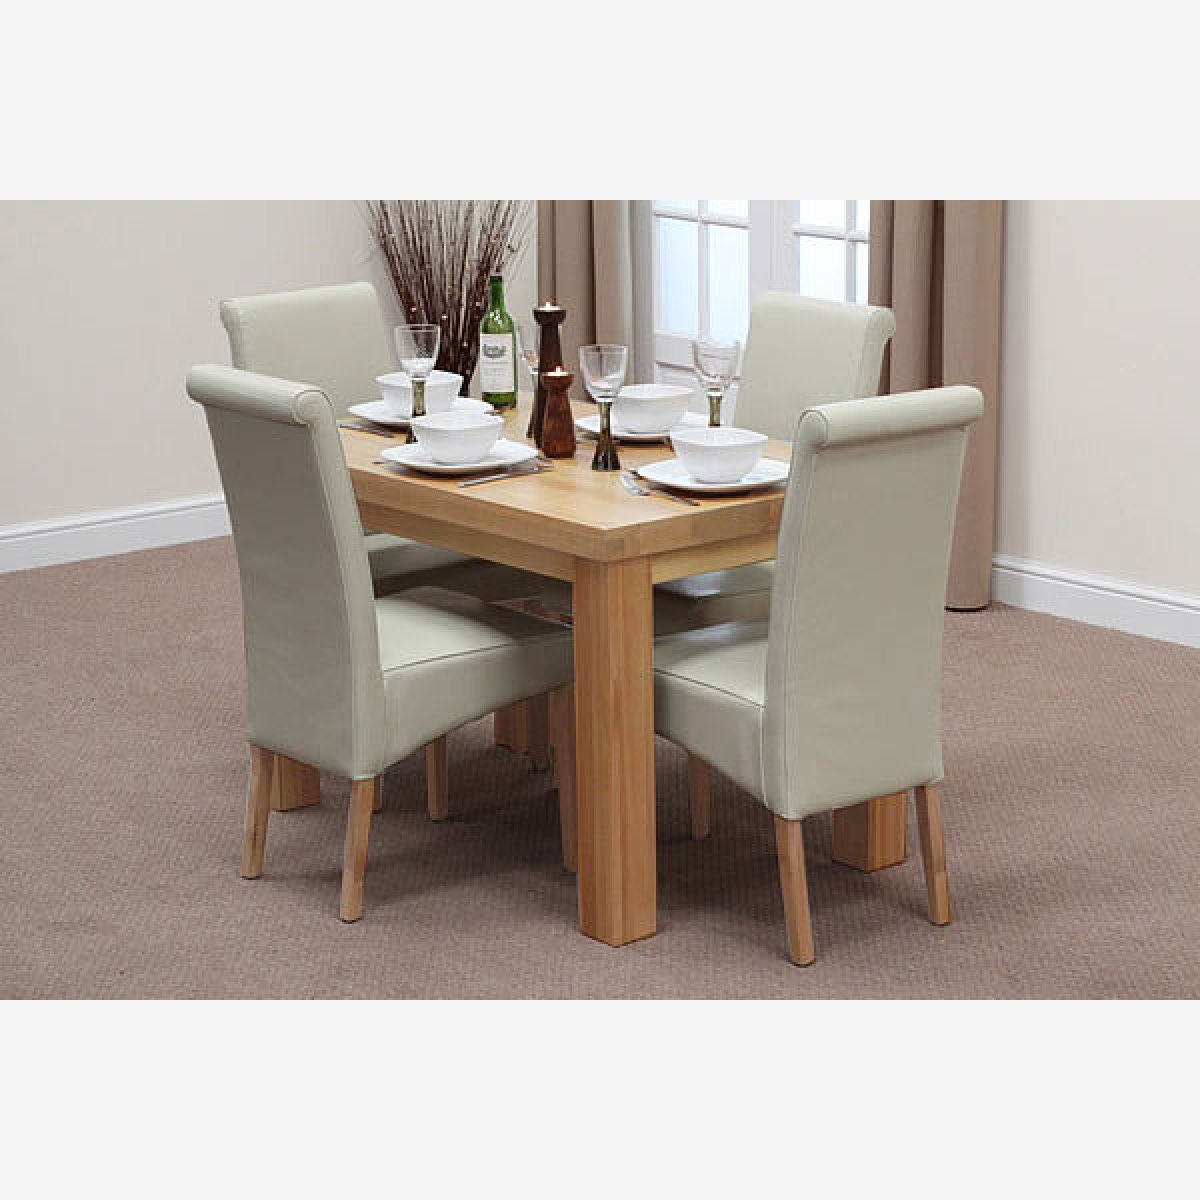 Fresco 4ft solid oak dining table 4 cream leather scroll for Solid oak furniture